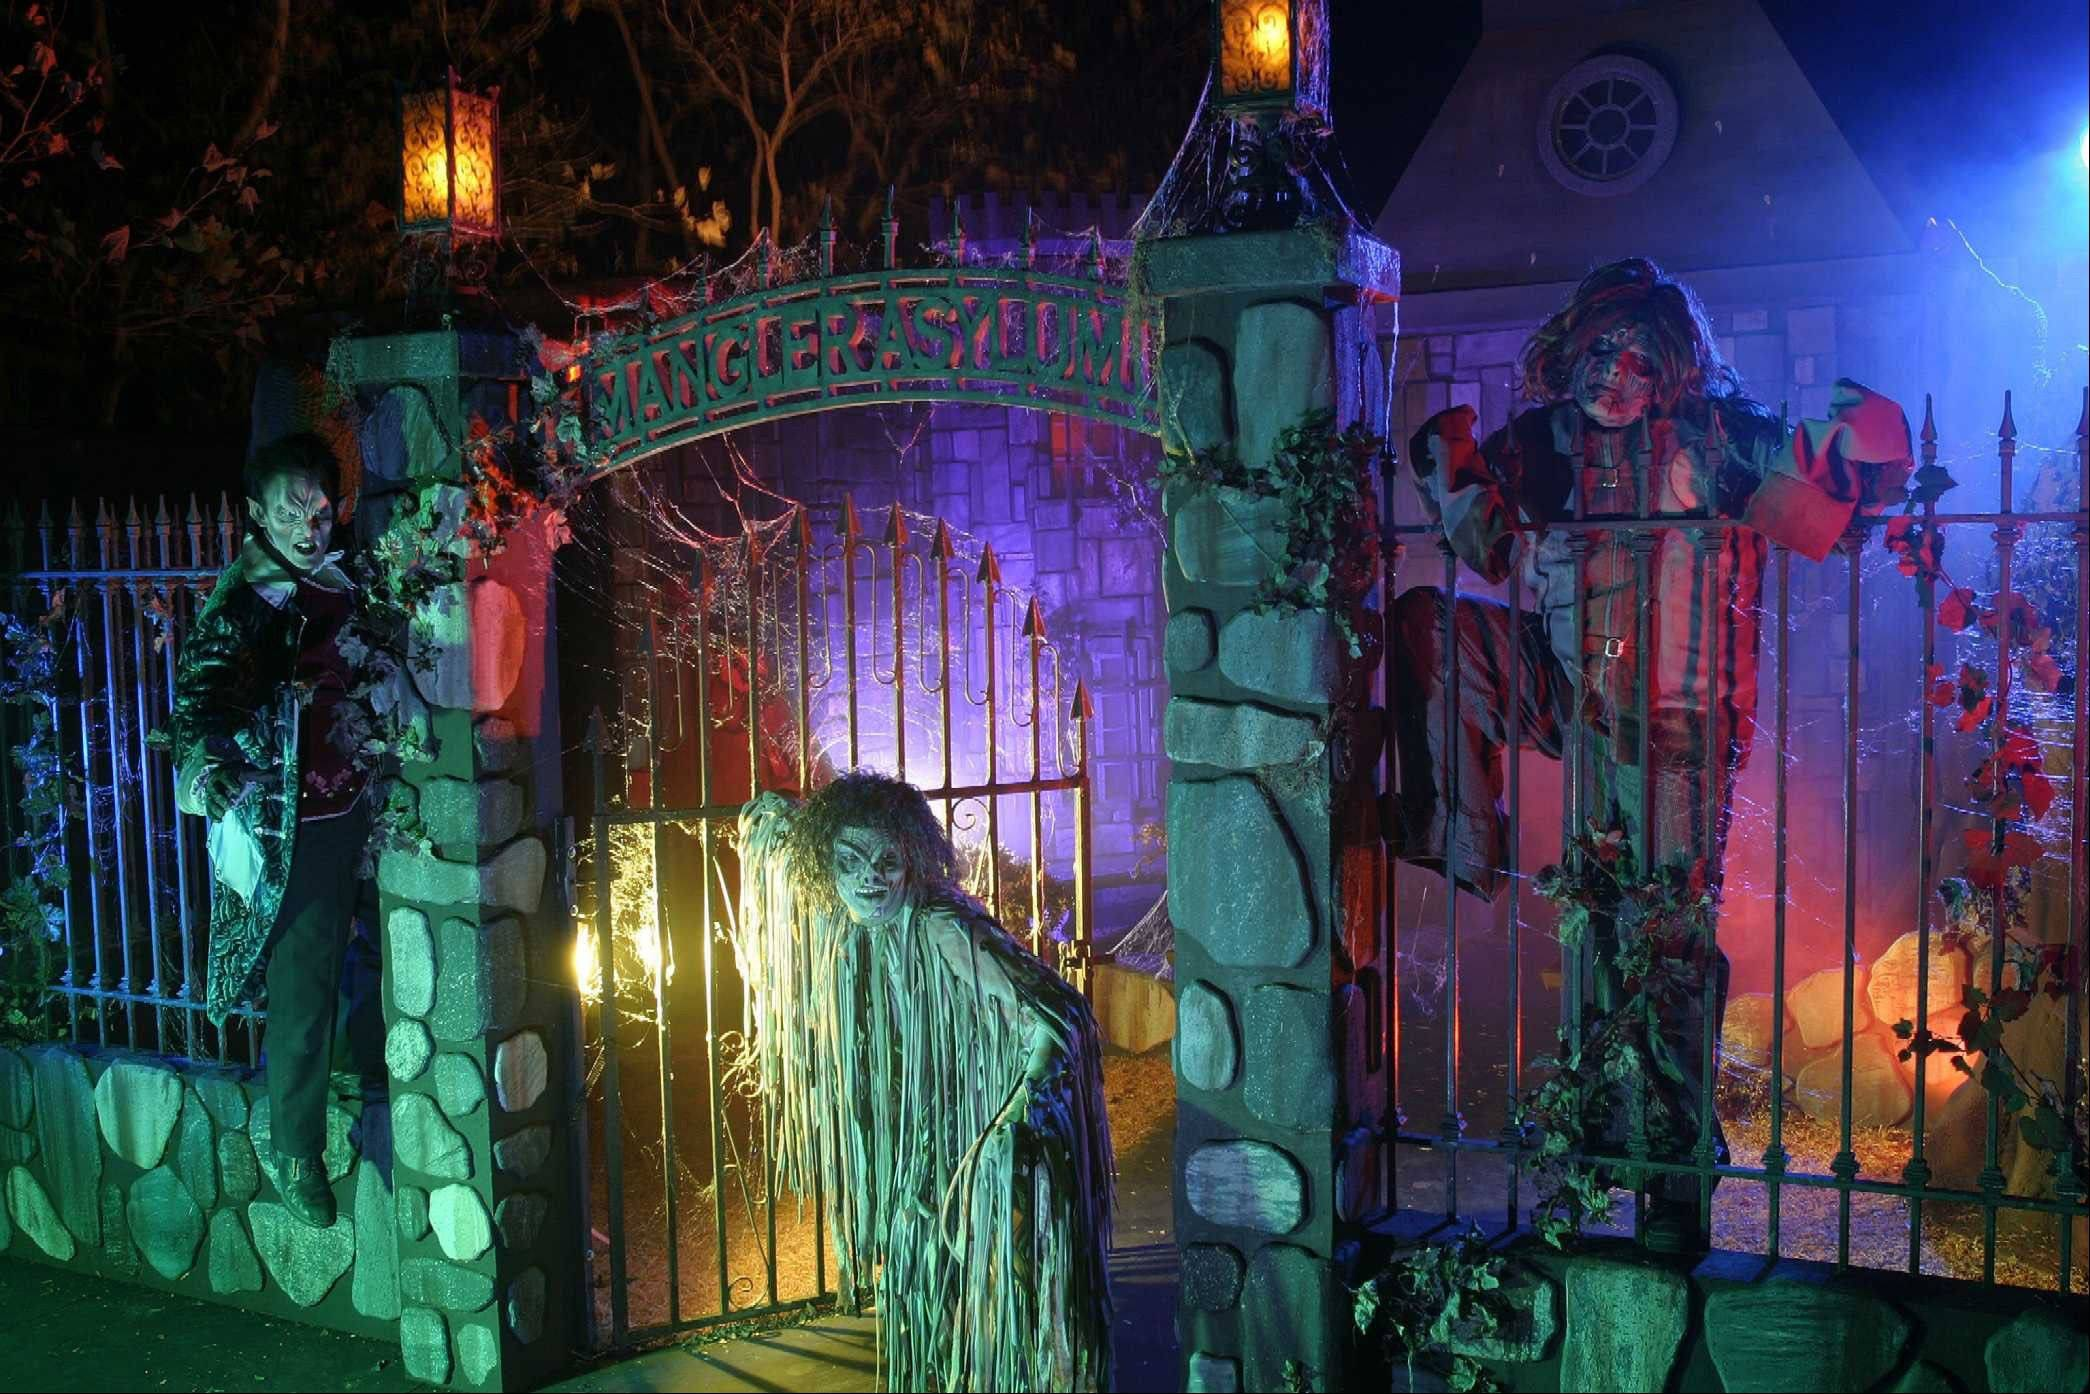 Knott's Berry Farm had one of the first major Halloween events back in the 1970s, but the concept has since grown into an industry, with amusement parks, farms and even historic sites offering weeks of Halloween-themed entertainment leading up to the holiday.